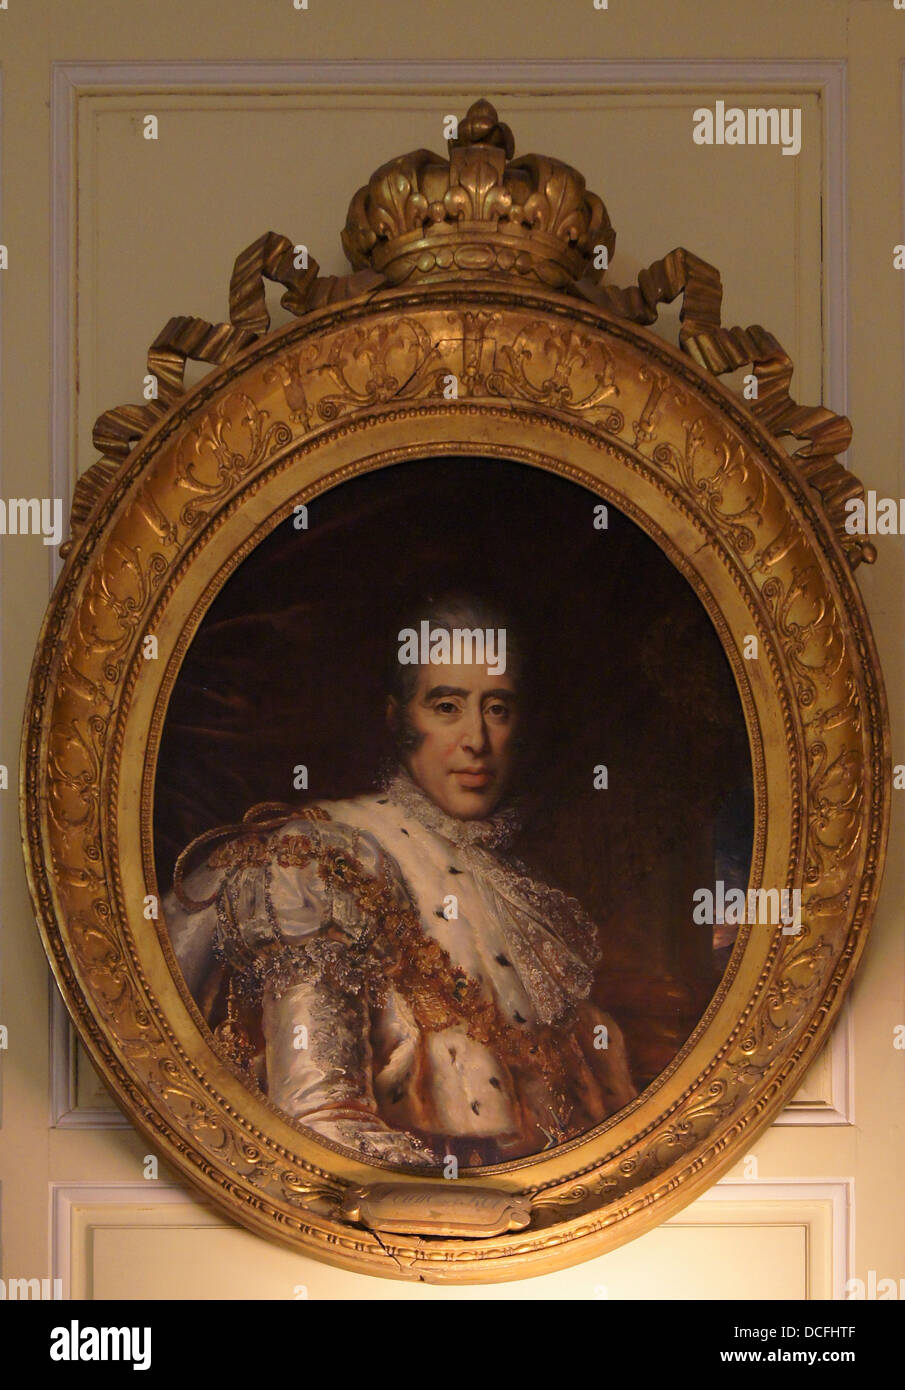 Portrait of king Charles X of France, oil on canvas, Château de Breteuil, France - Stock Image